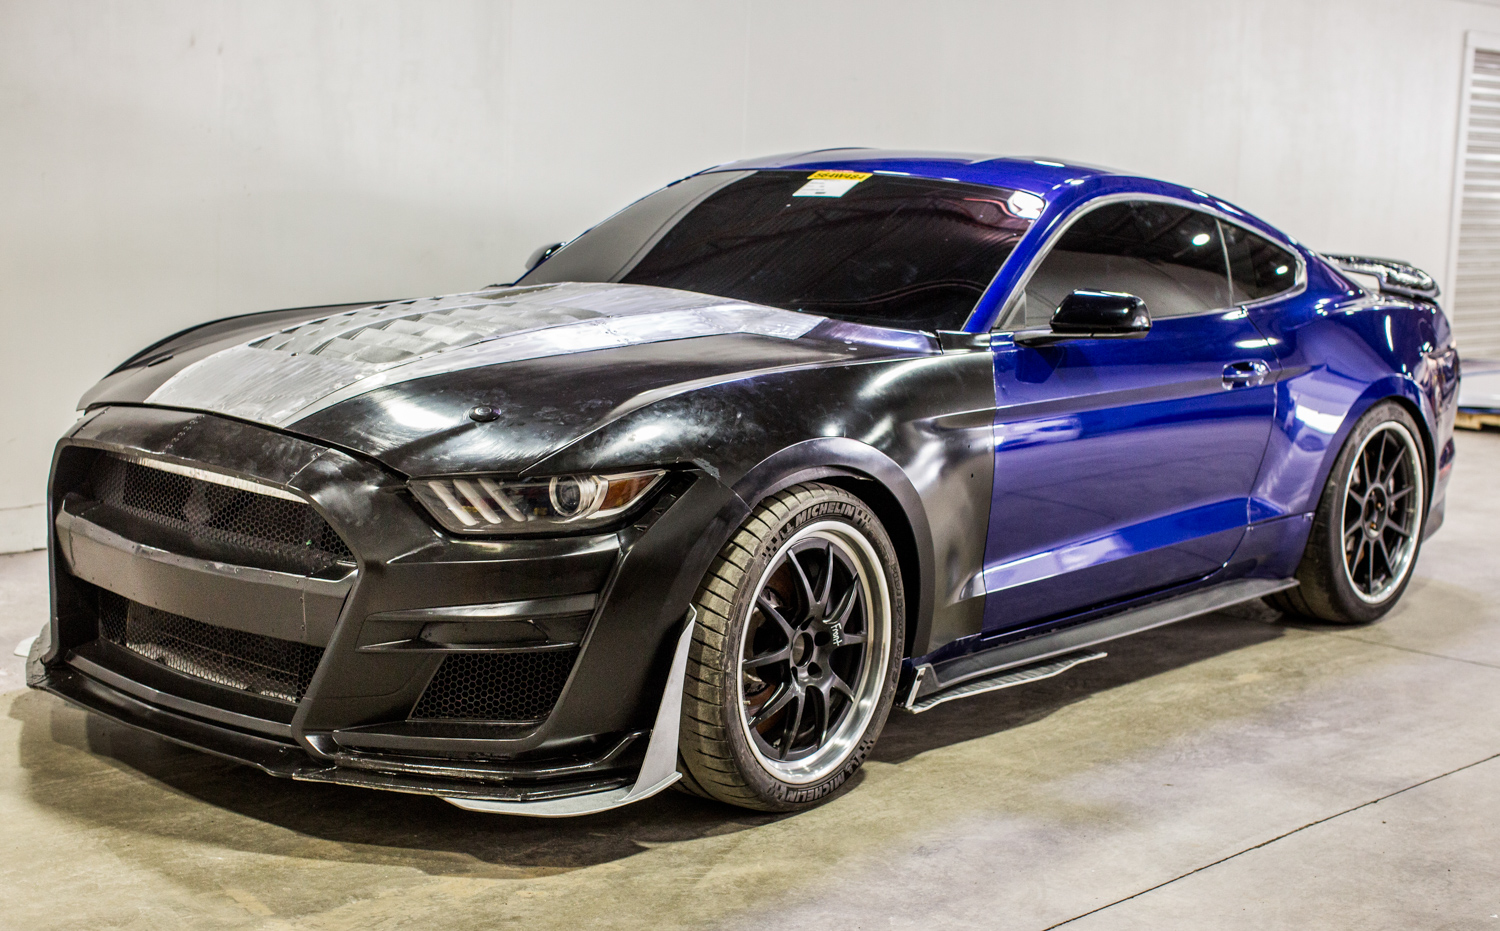 2020 Ford Mustang Shelby GT500 3/4 front